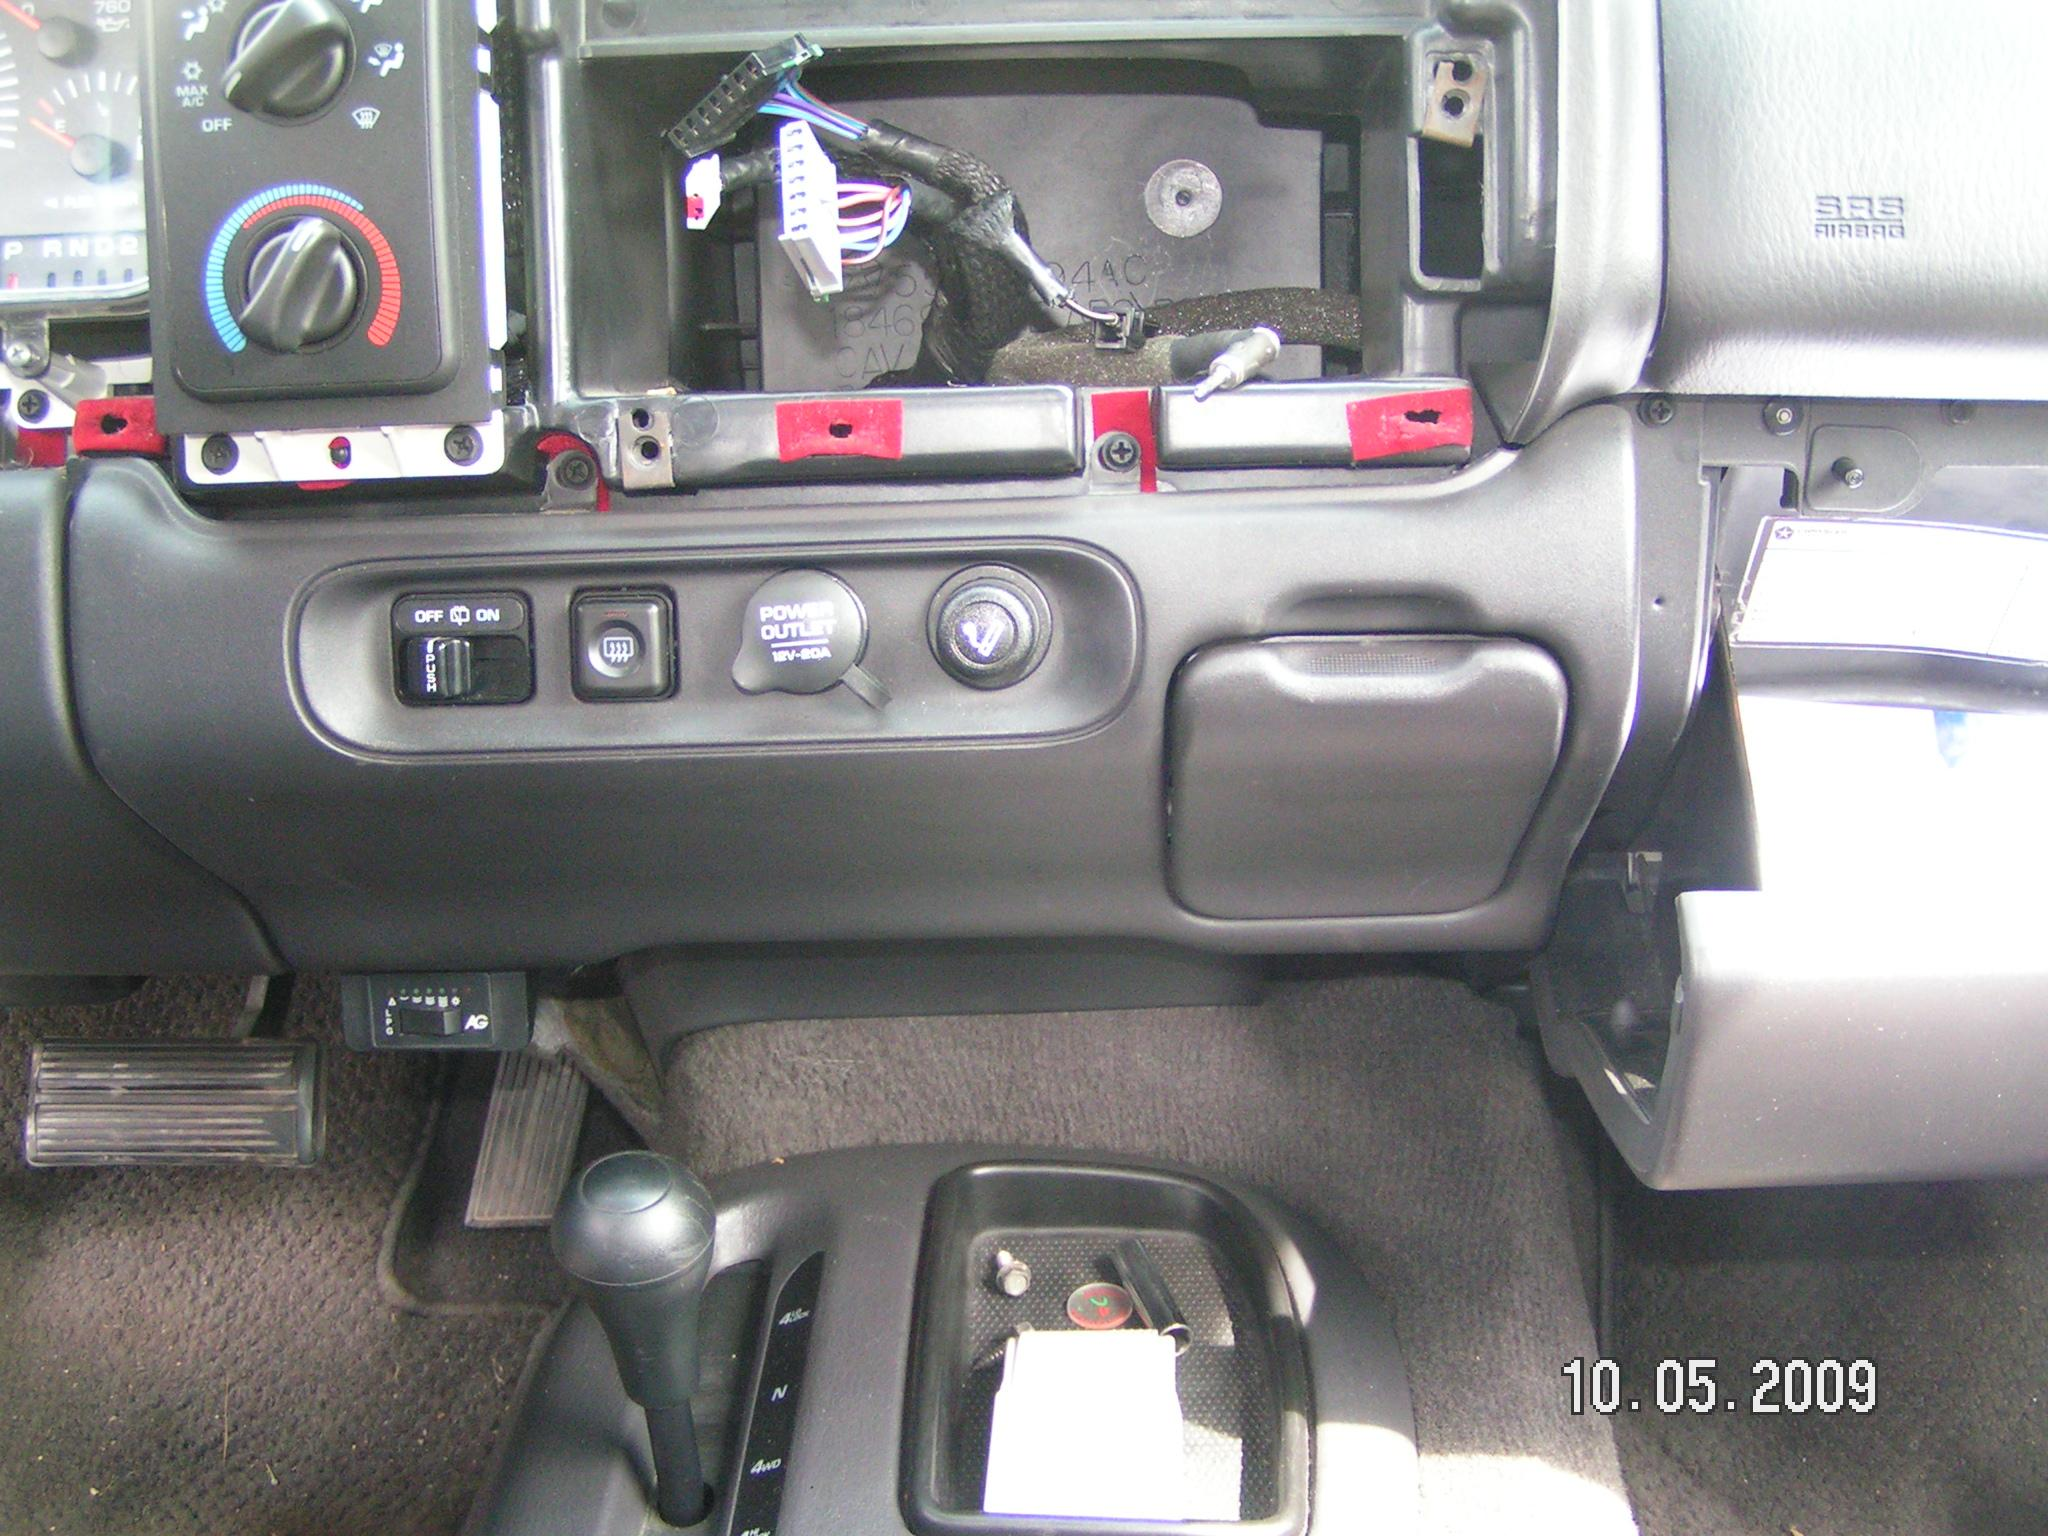 2000 Dodge Durango Stereo Wiring Diagram: Radio Replacementrh:craigcentral.com,Design